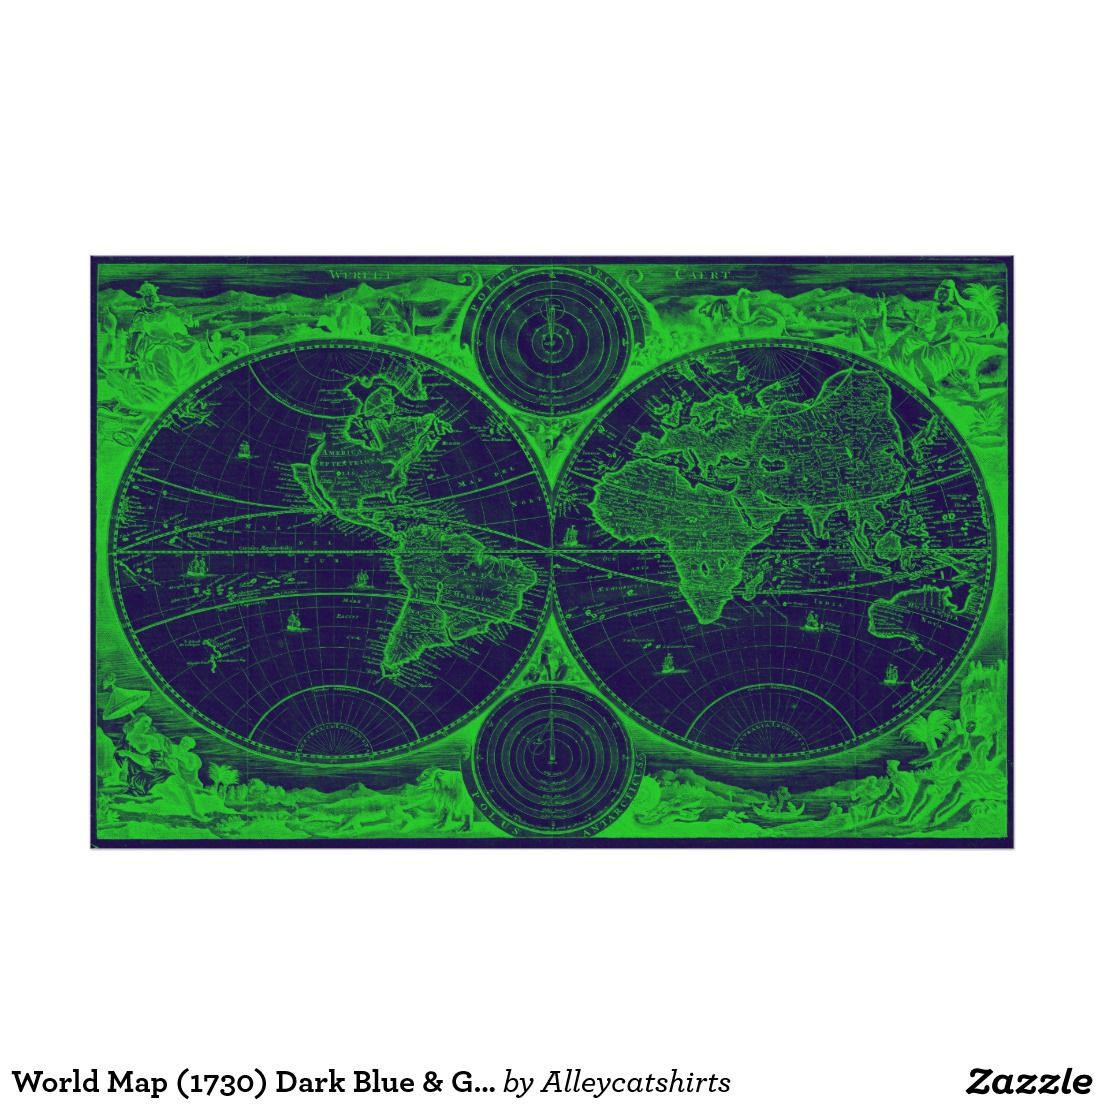 World map 1730 dark blue green poster colorful world maps shop world map pink light blue poster created by alleycatshirts gumiabroncs Image collections